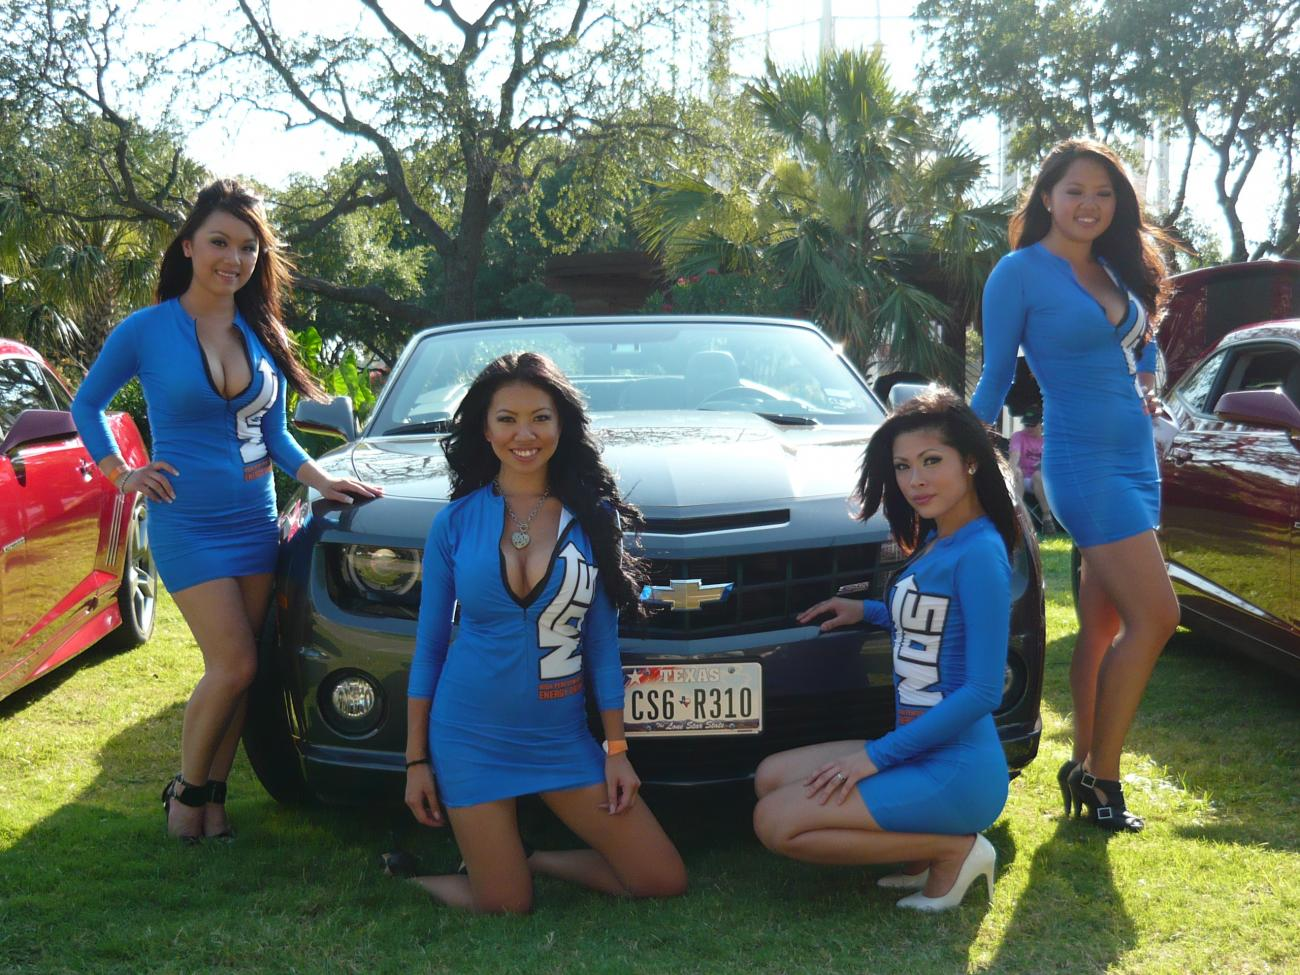 where to meet girls in dallas Dallas latinas dating with dallas hispanic singles girls using the no1 free dallas latin singles dating site for dallas single latinas at amorcom meet hispanic single girls, dallas single latin women and single latino women online through our online latina personals and local latina dating ads.